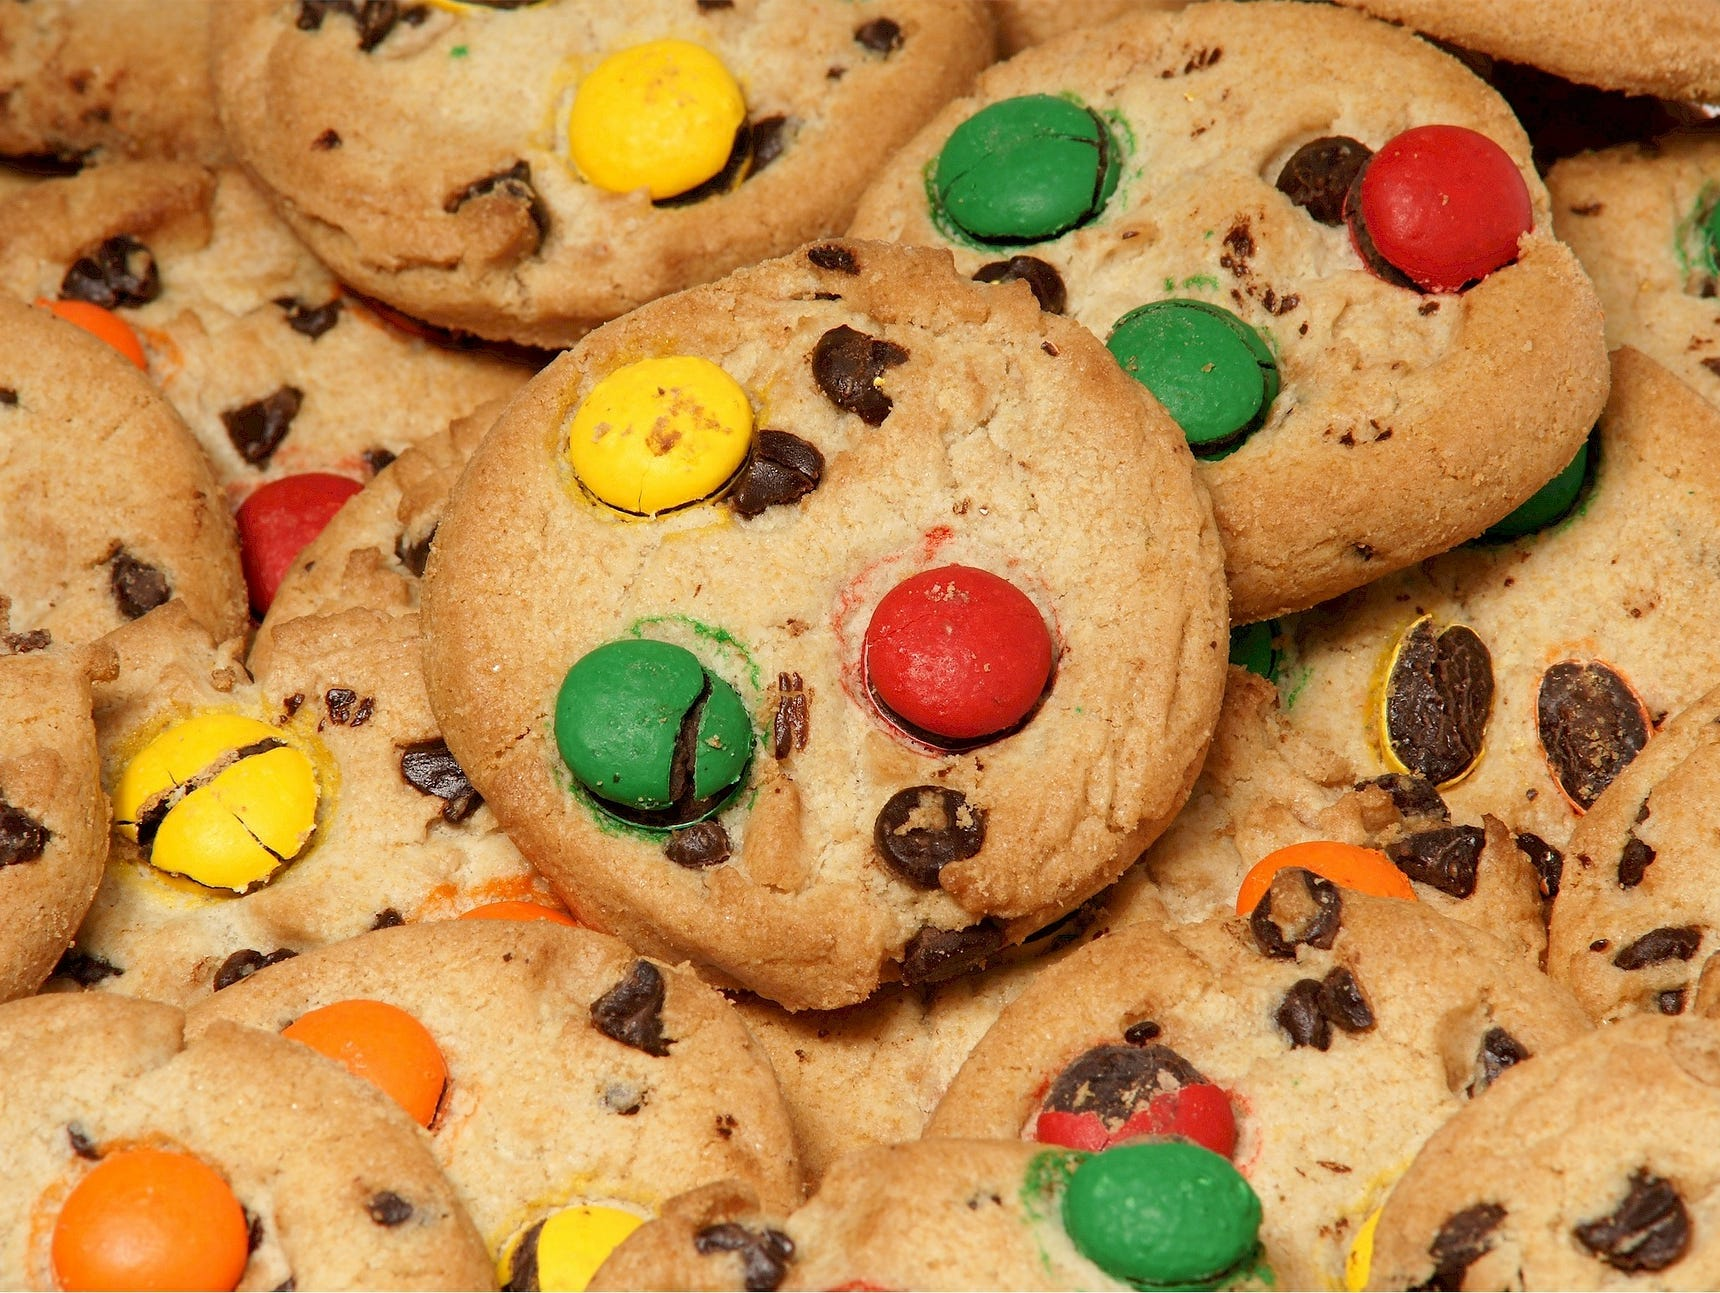 Enjoy Six Gourmet Cookies FREE with the purchase of Six Gourmet Cookies at the regular price.